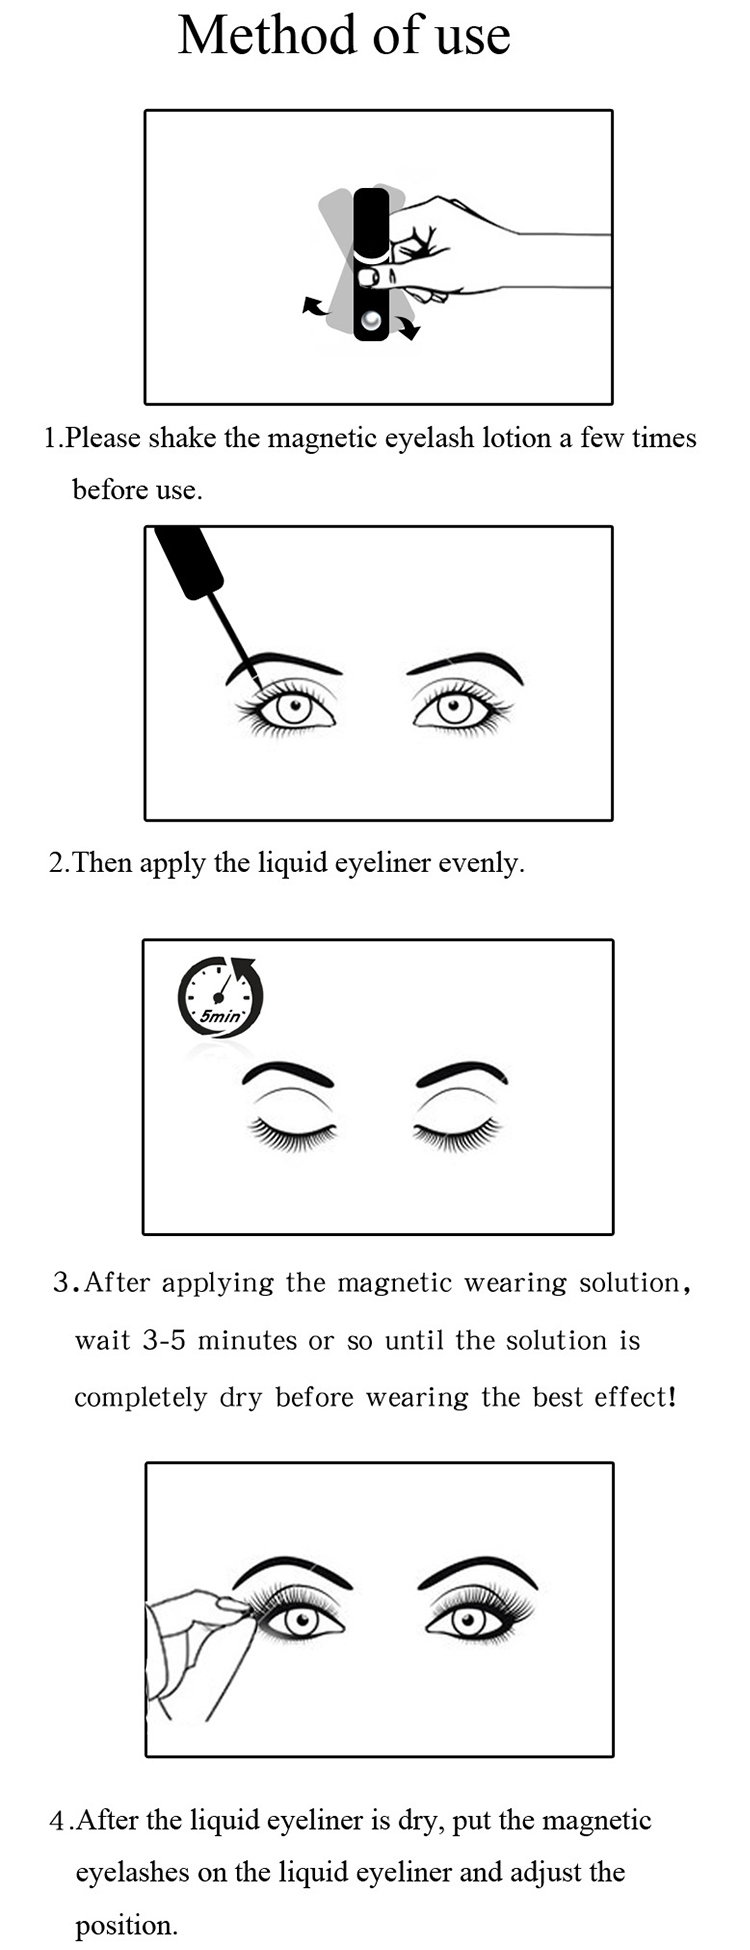 how-to-use-of-the-magnetic-eyelashes.jpg